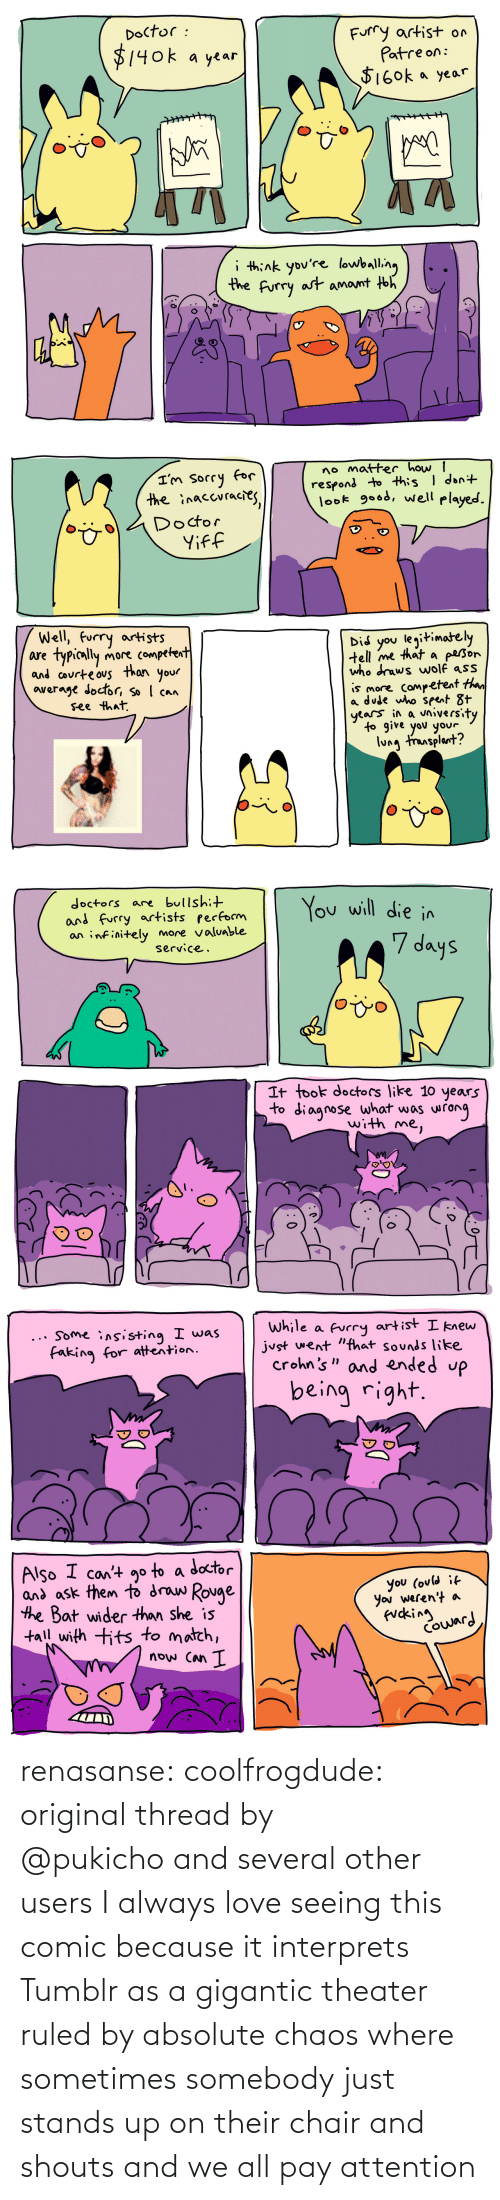 Doctor, Love, and Tumblr: renasanse:  coolfrogdude: original thread by @pukichoand several other users I always love seeing this comic because it interprets Tumblr as a gigantic theater ruled by absolute chaos where sometimes somebody just stands up on their chair and shouts and we all pay attention